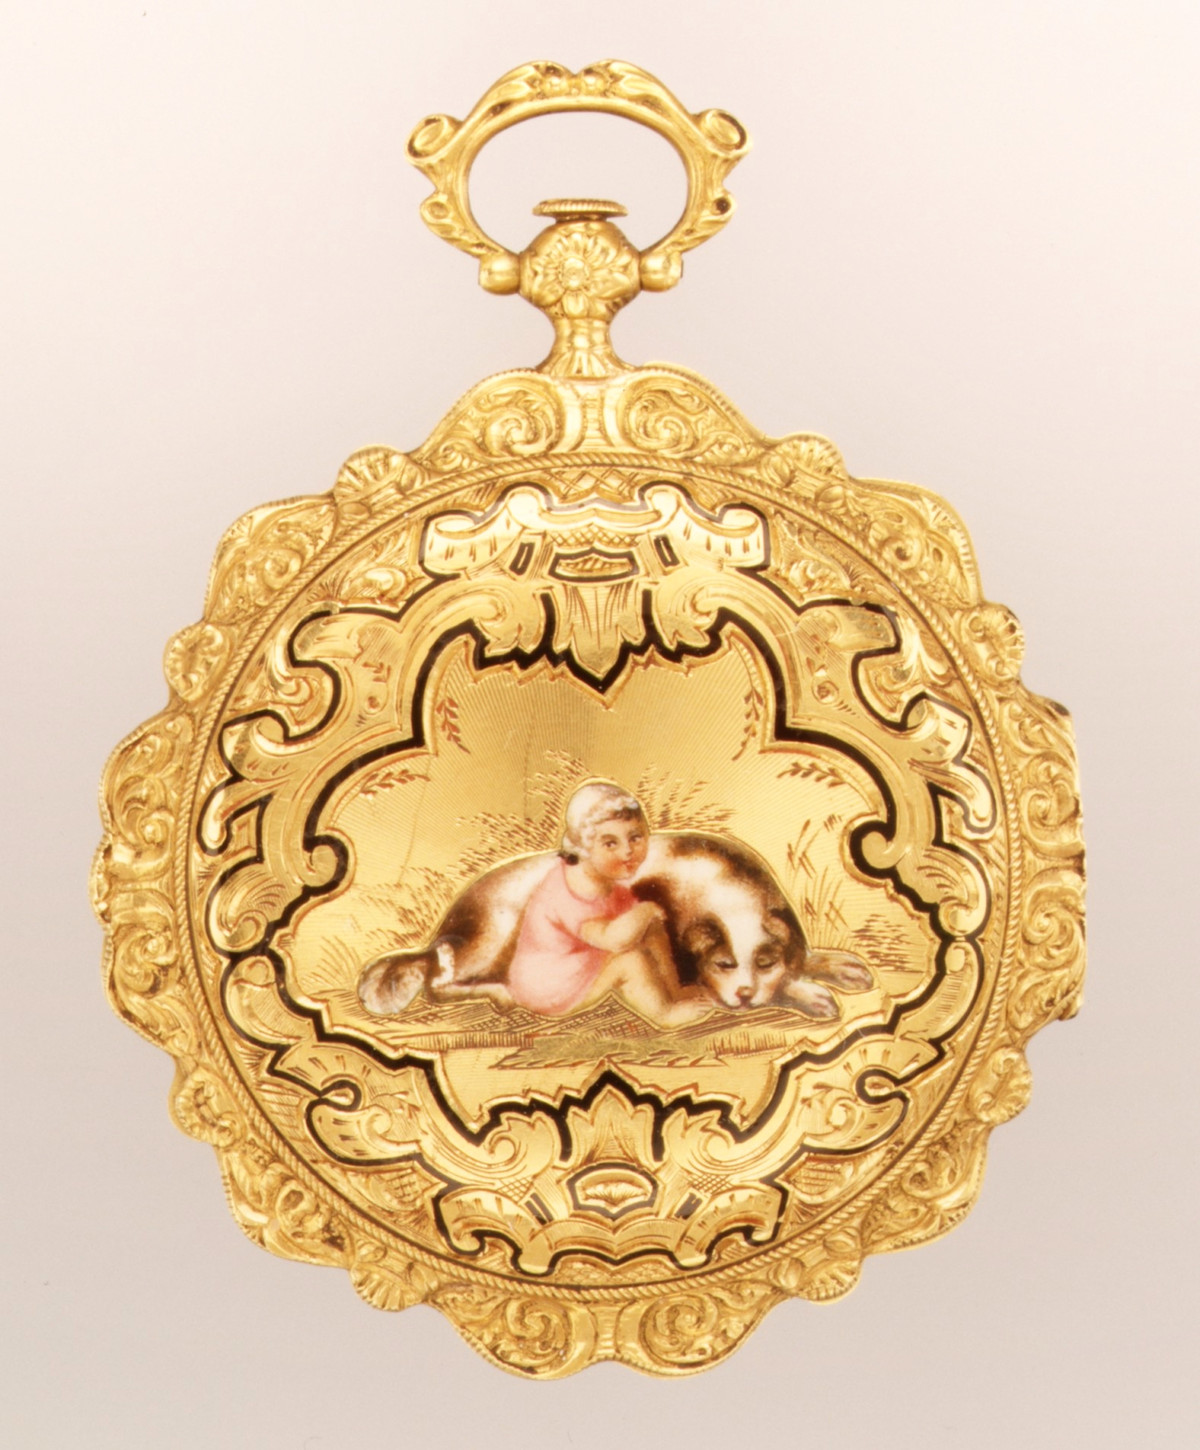 1835. Watch. Swiss, Geneva. Gold, enamel, silver. metmuseum